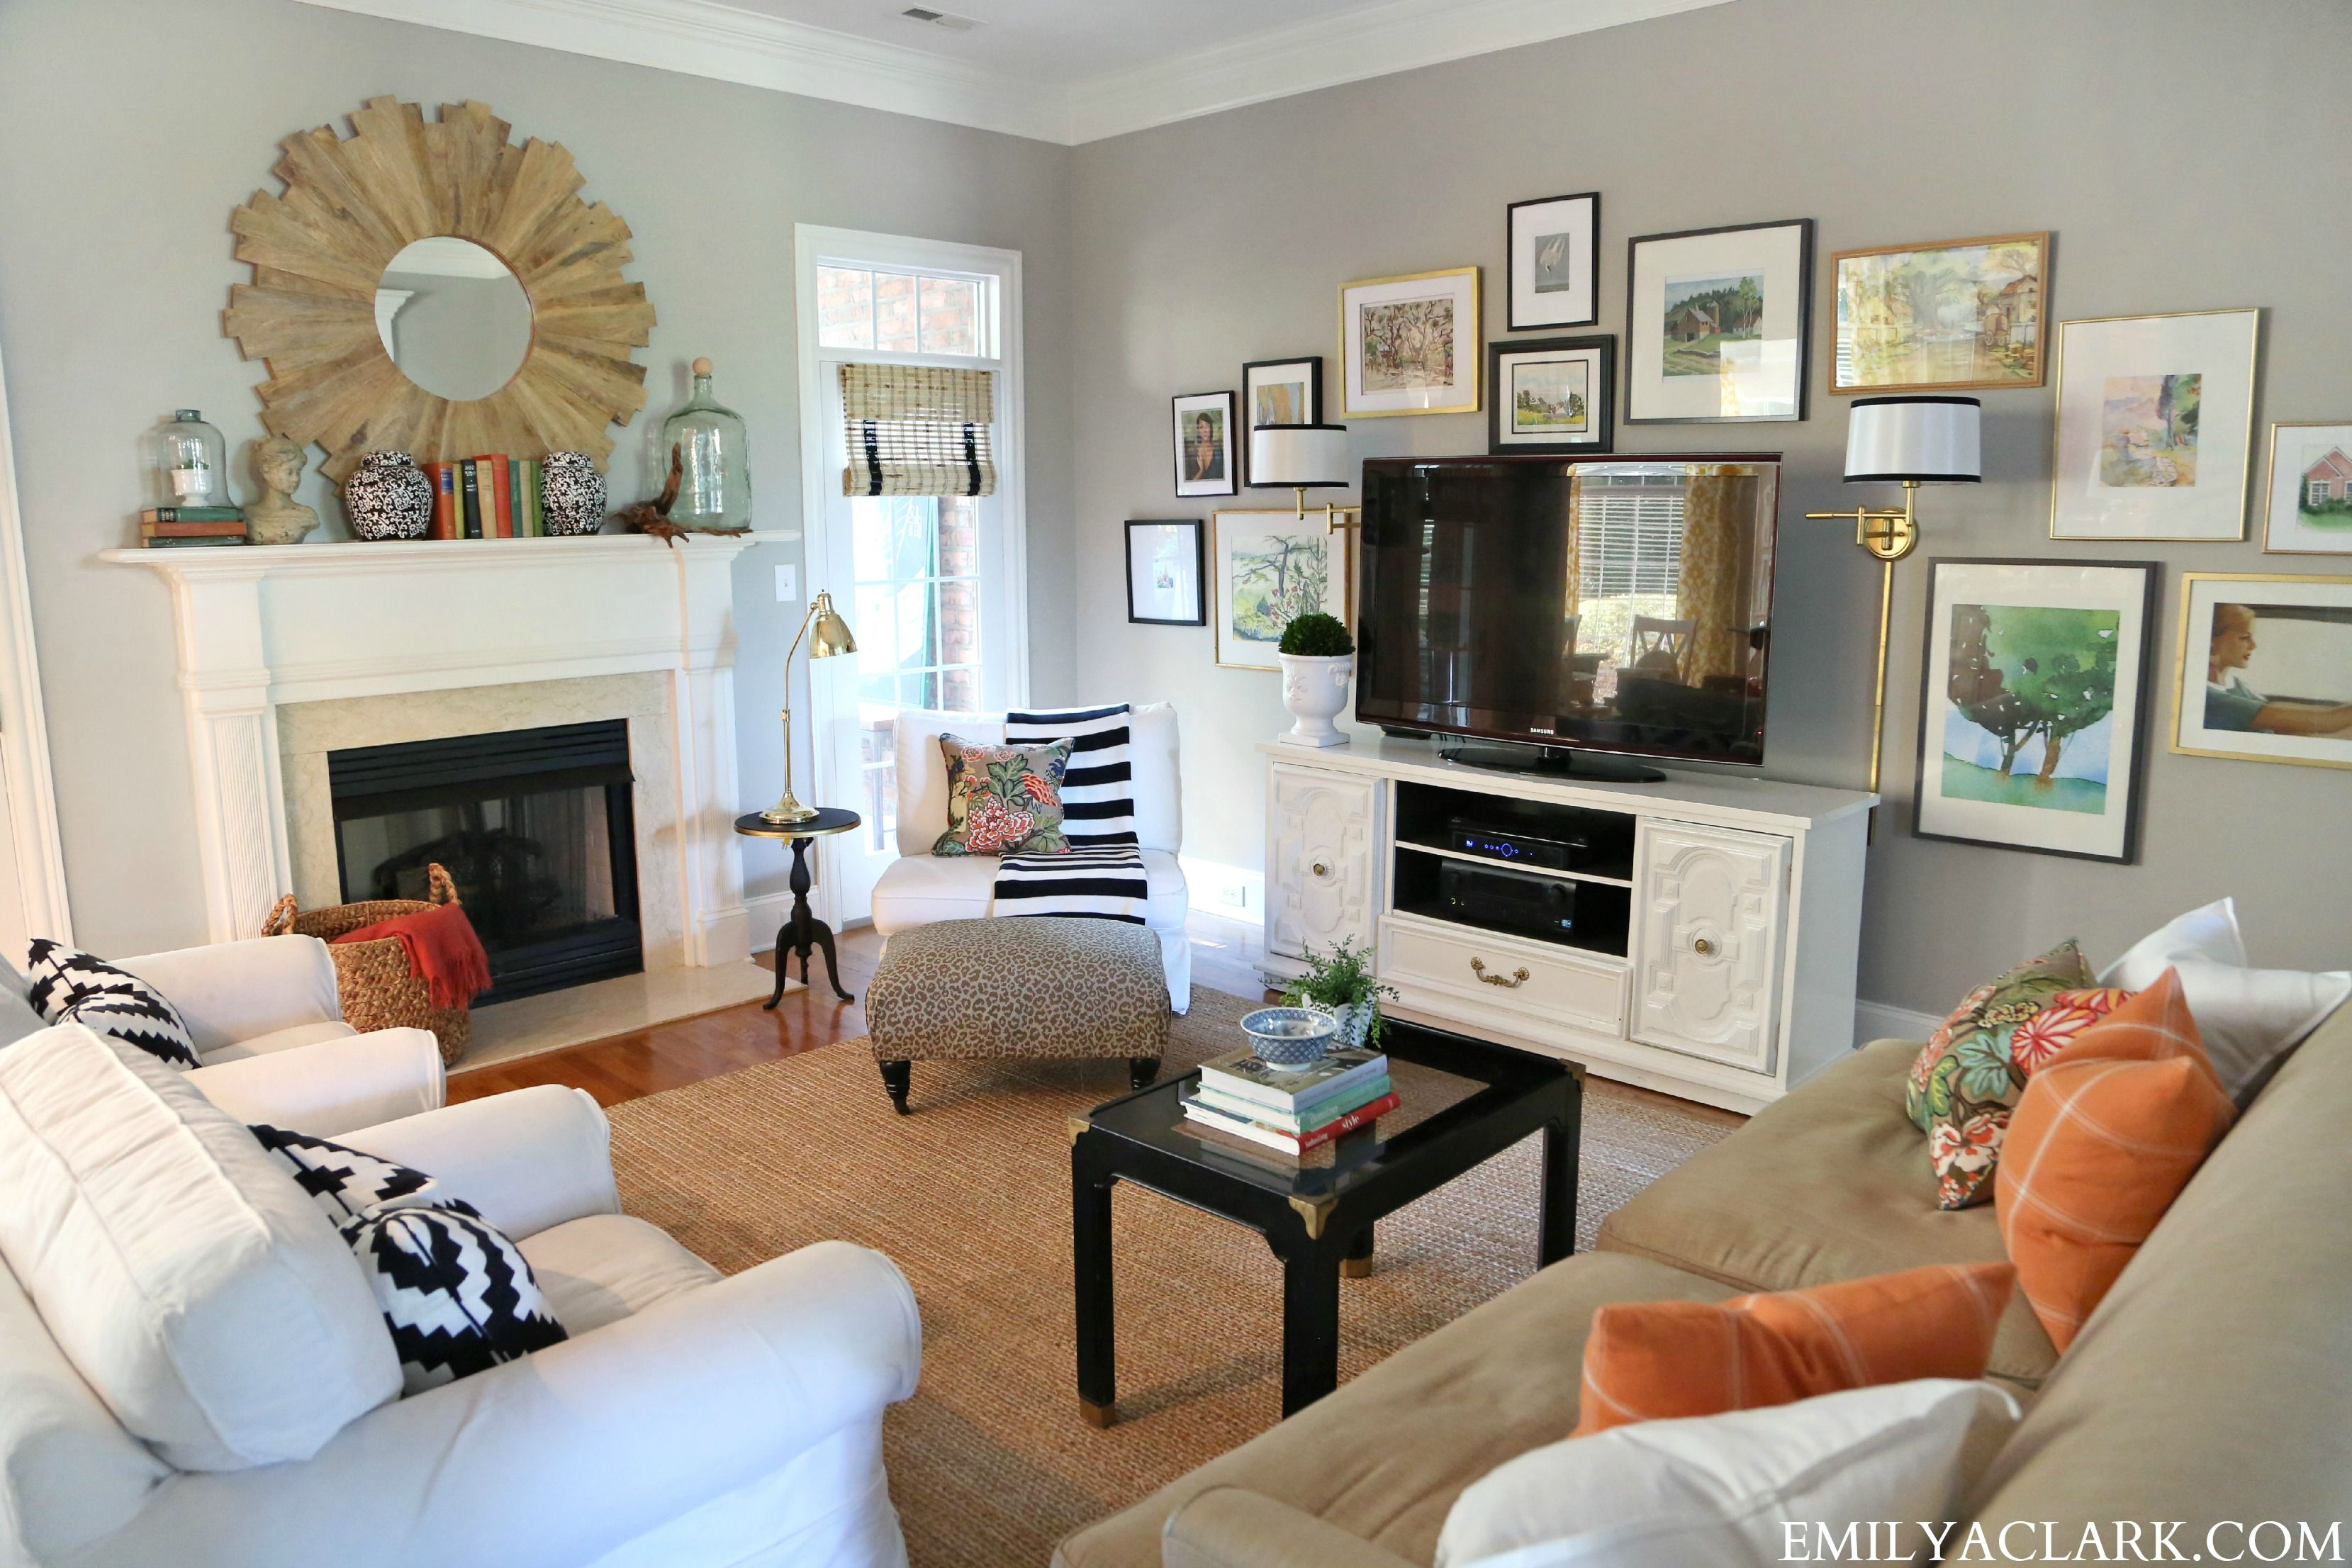 Our Home In Bh G Bargain Decorating Emily A Clark Living Room Furniture Layout Narrow Living Room Living Room Furniture Arrangement